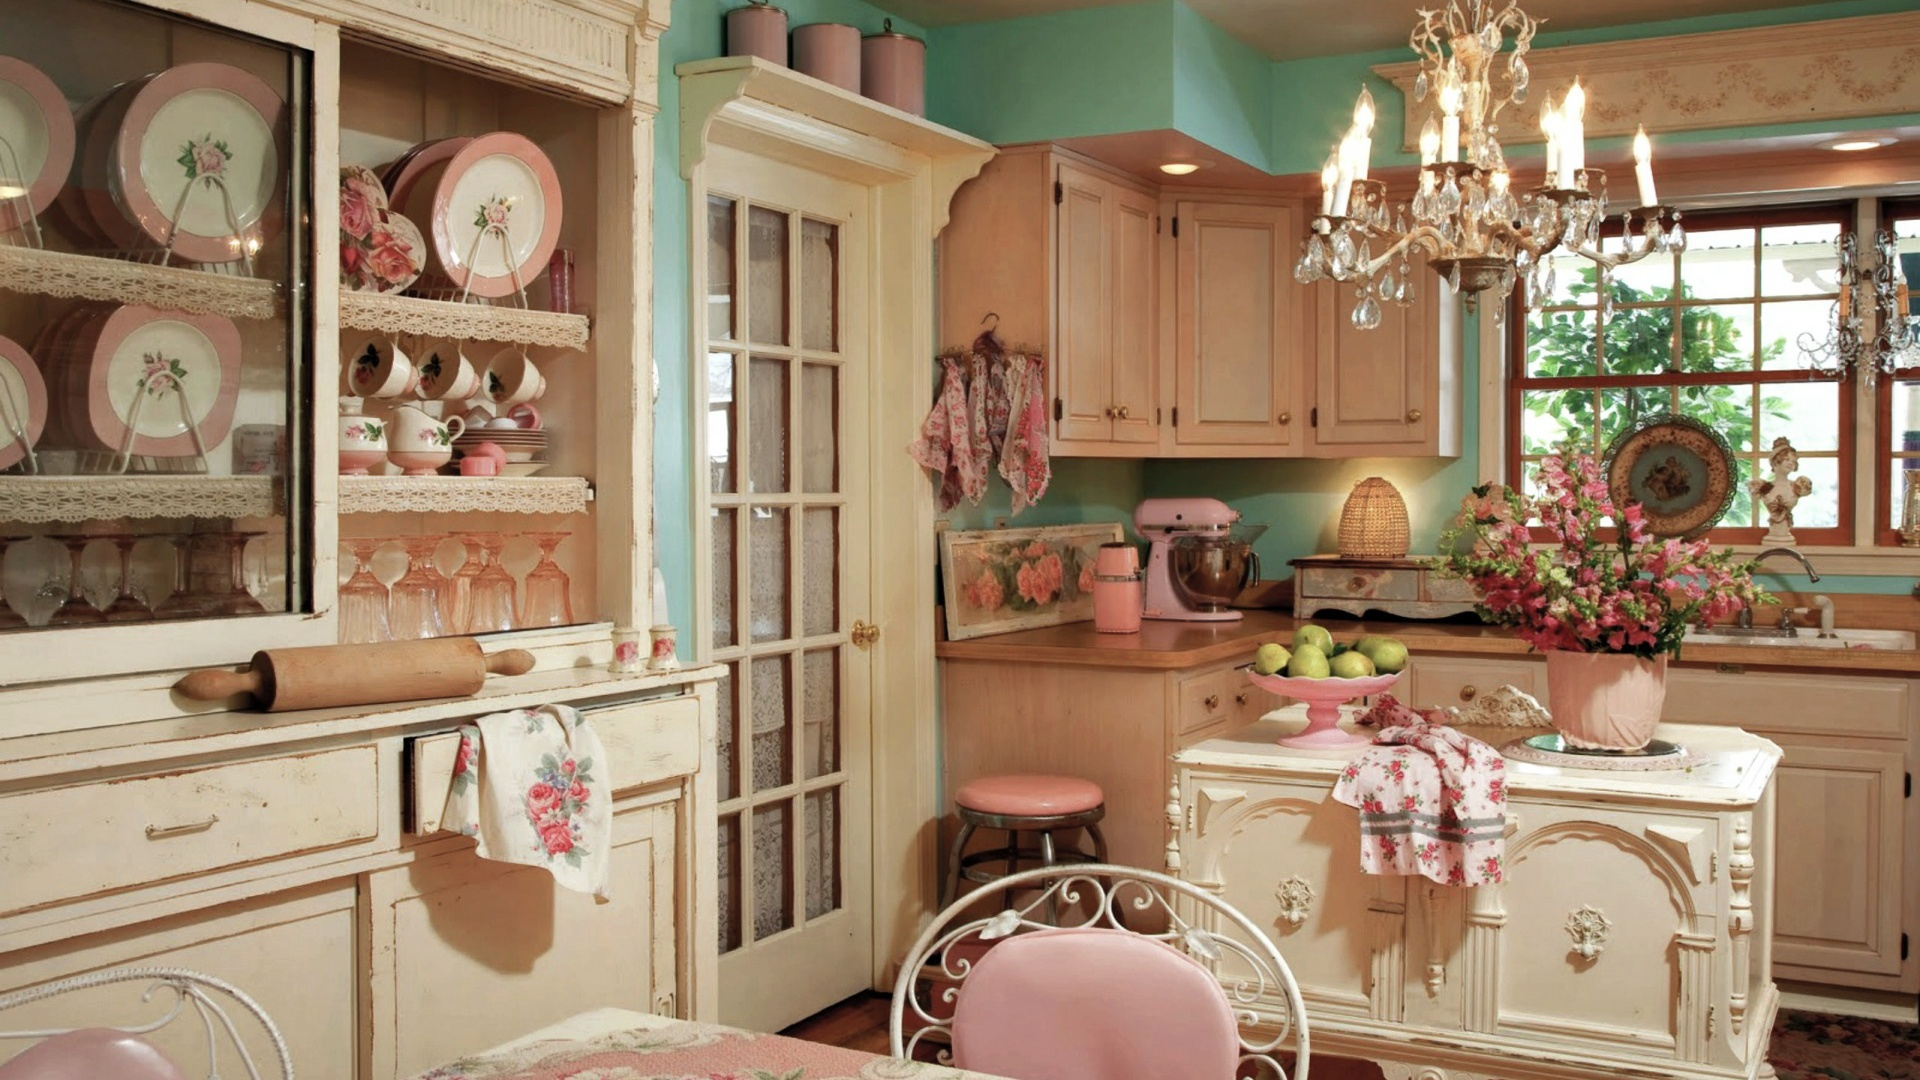 Vintage Kitchen Decor Ideas for Perfect Look | Southern ...